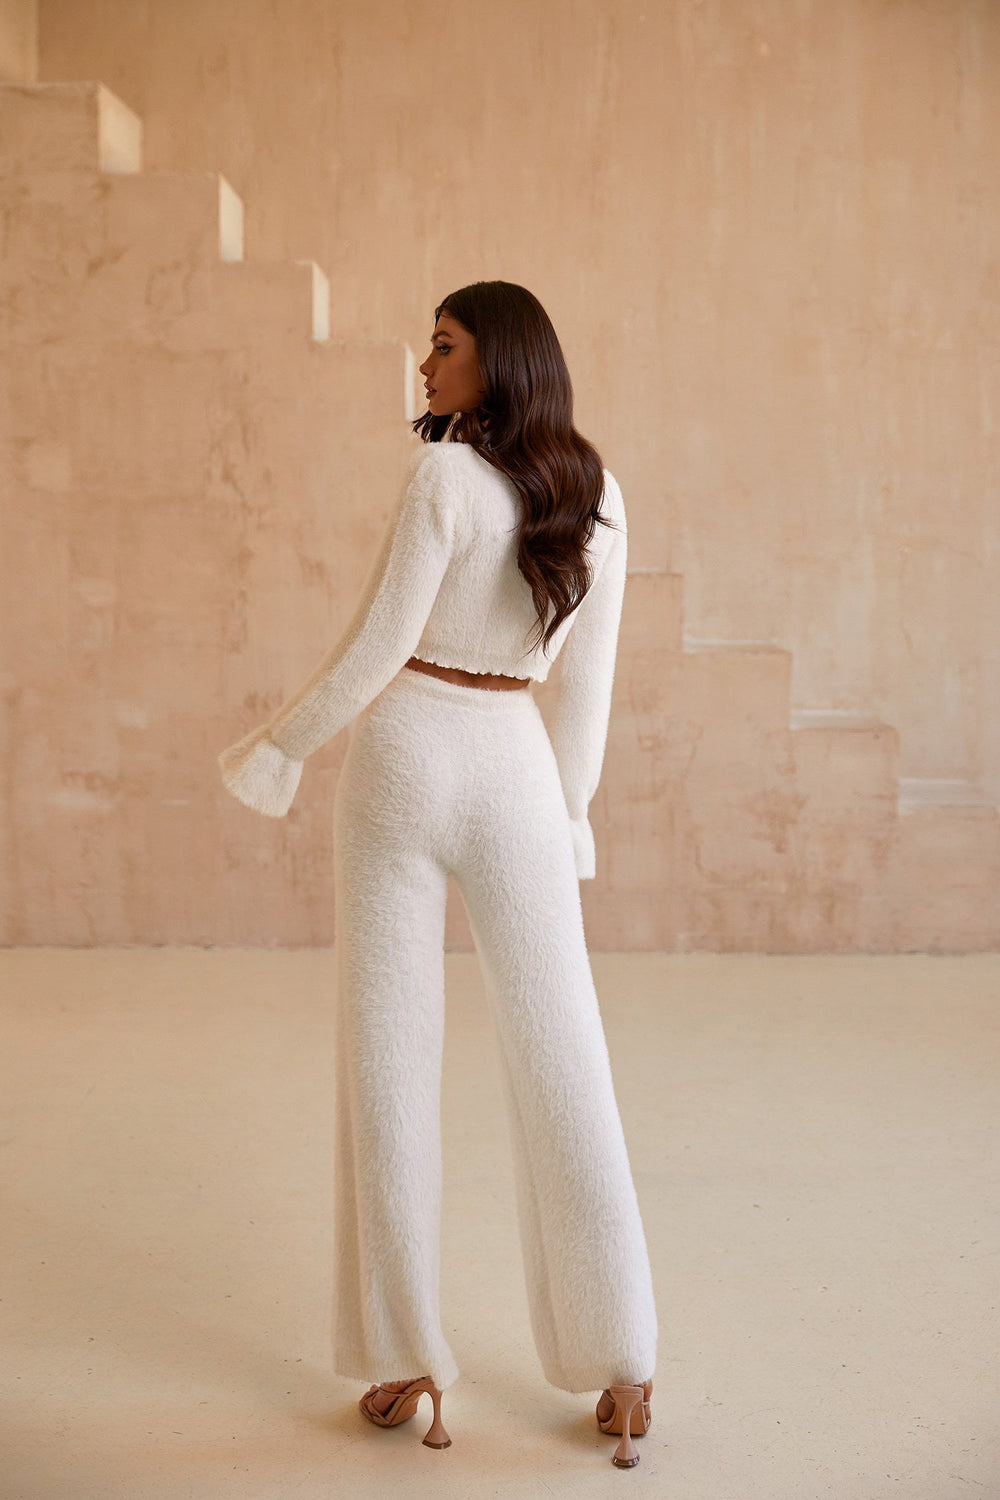 Kelly Pants - White High Waist Fluffy Flared Leg Lounge Pants